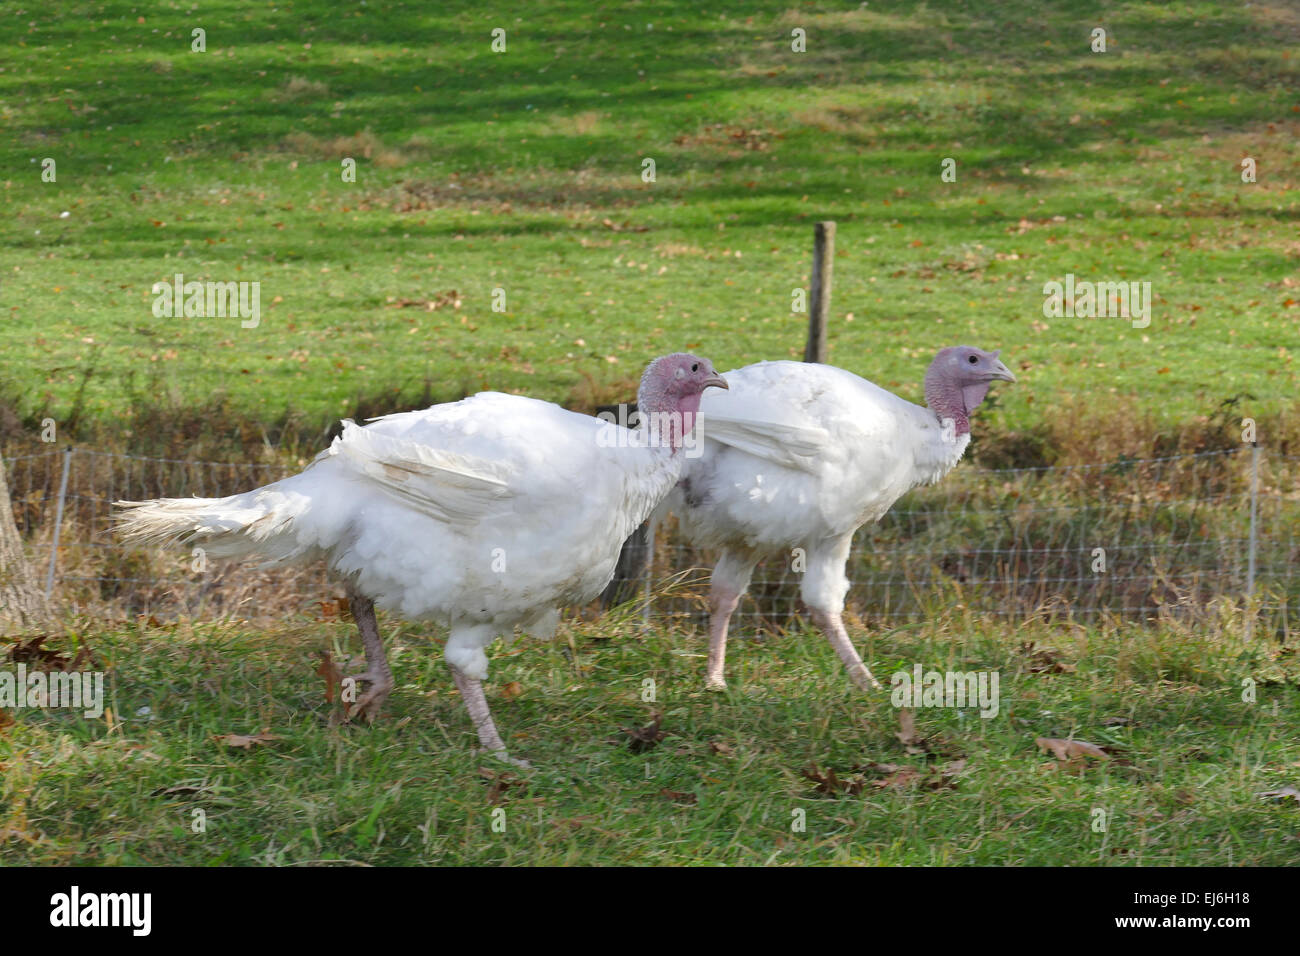 Two turkeys on the move on farm - Stock Image